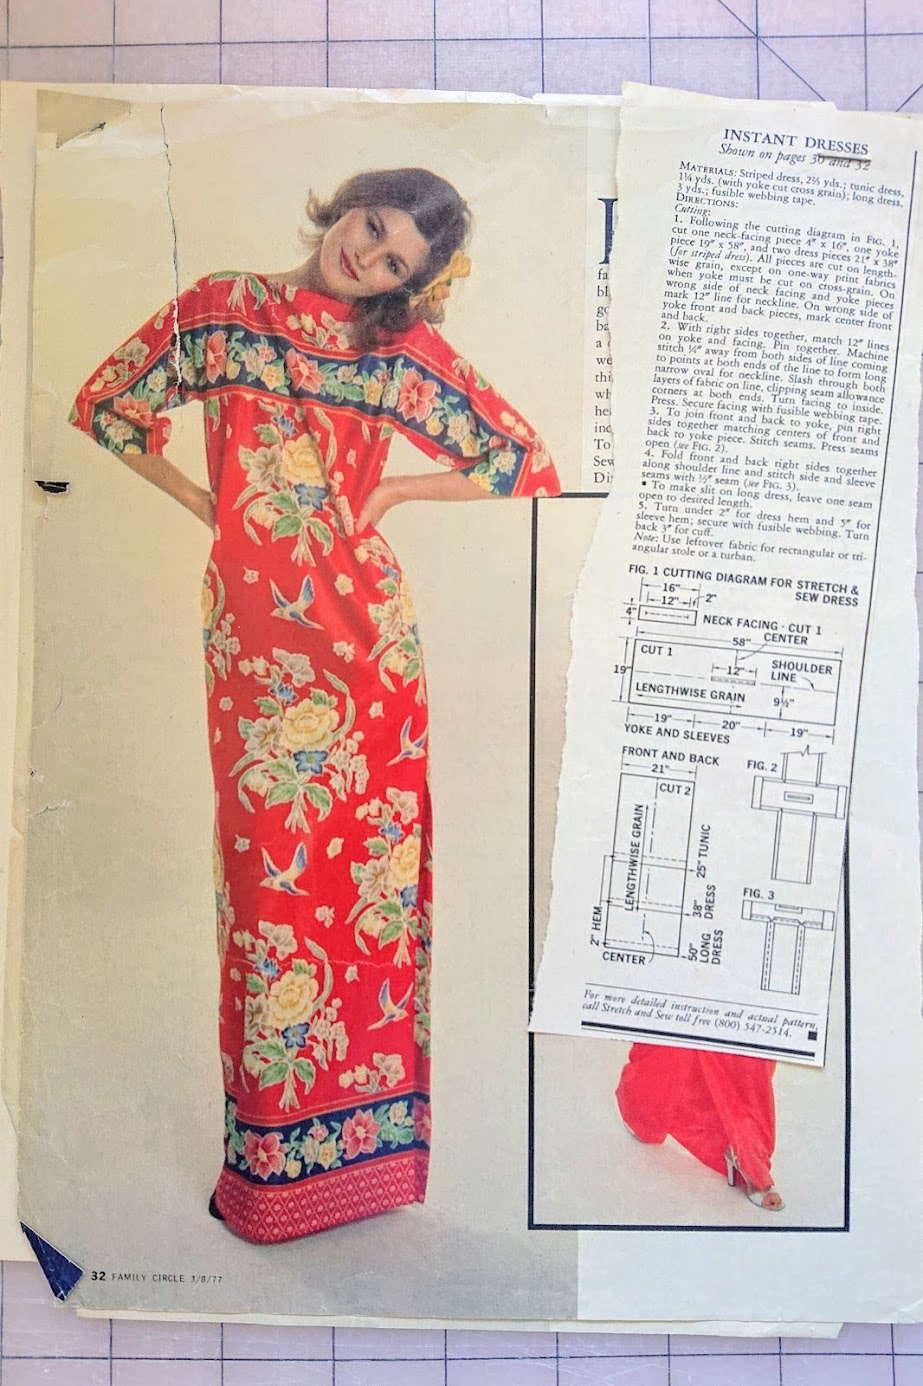 Pattern details of Instant Dress